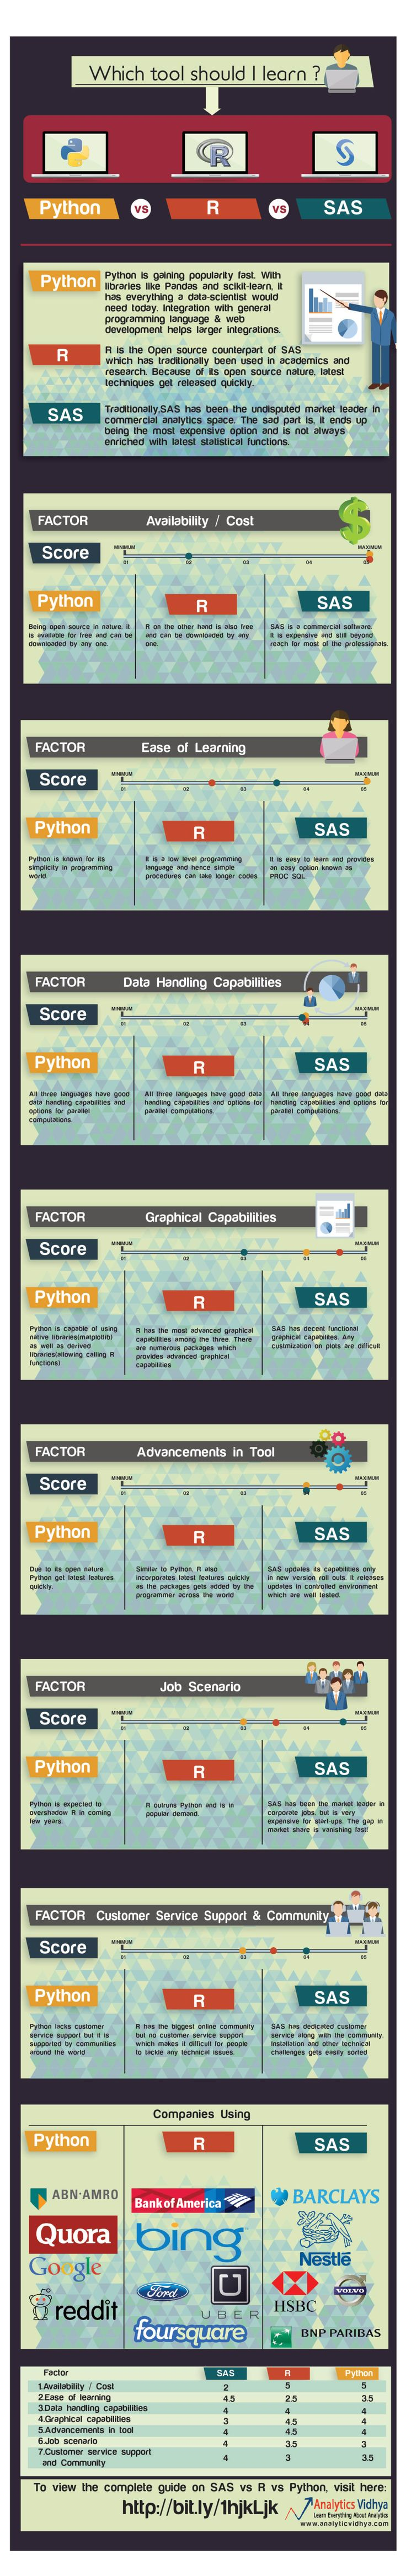 INFOGRAPHIC: Quick Guide on SAS vs R vs Python | bicorner.com